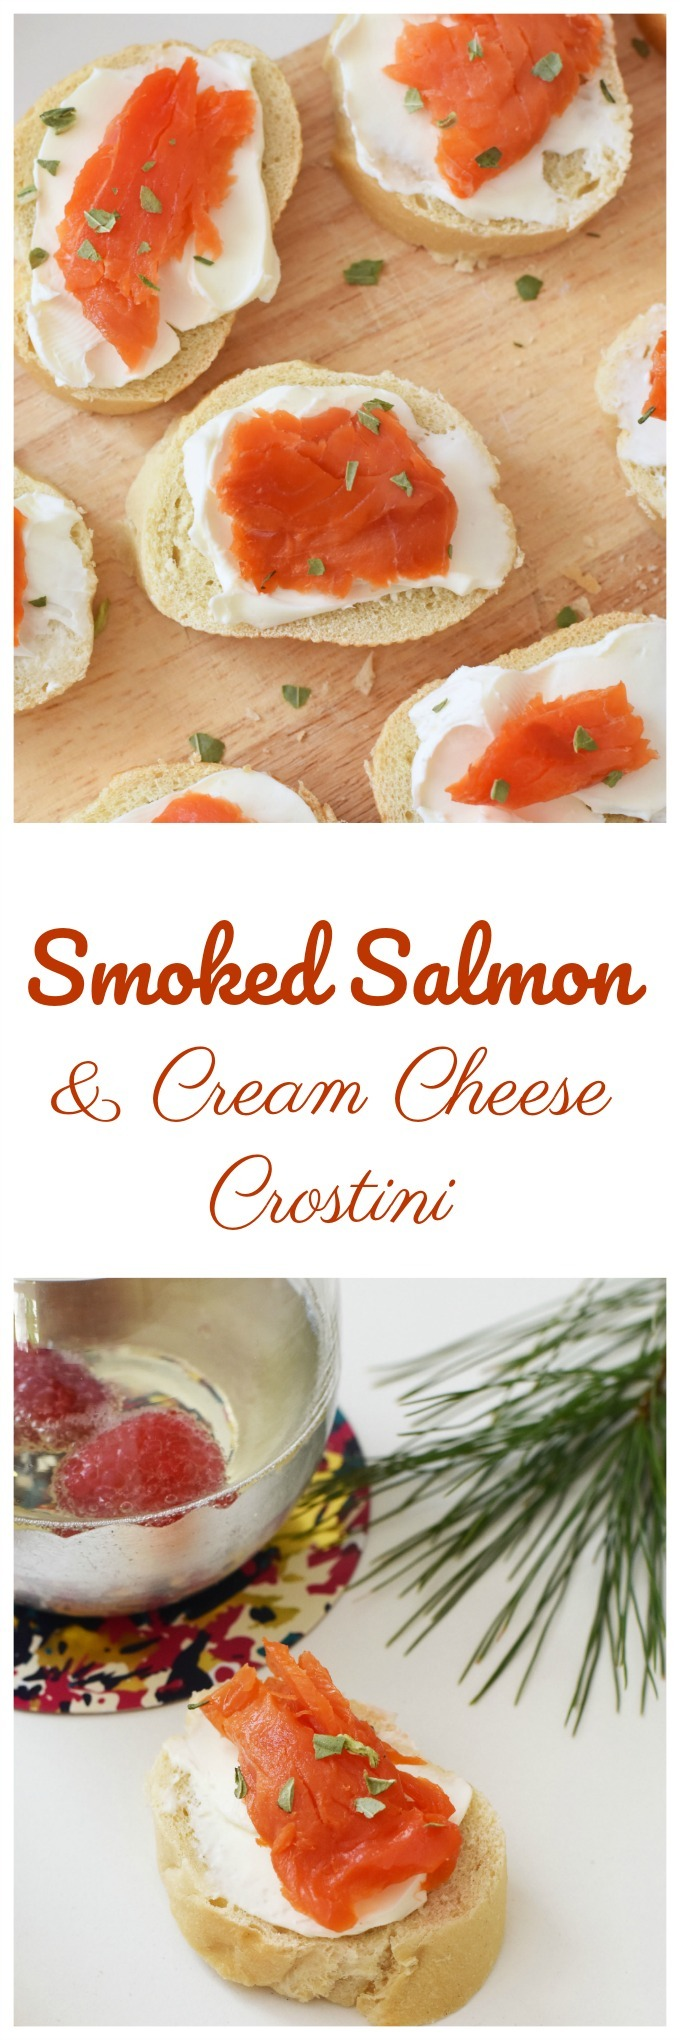 Smoked Salmon Slices and Cream Cheese Crostini Appetizer Bites